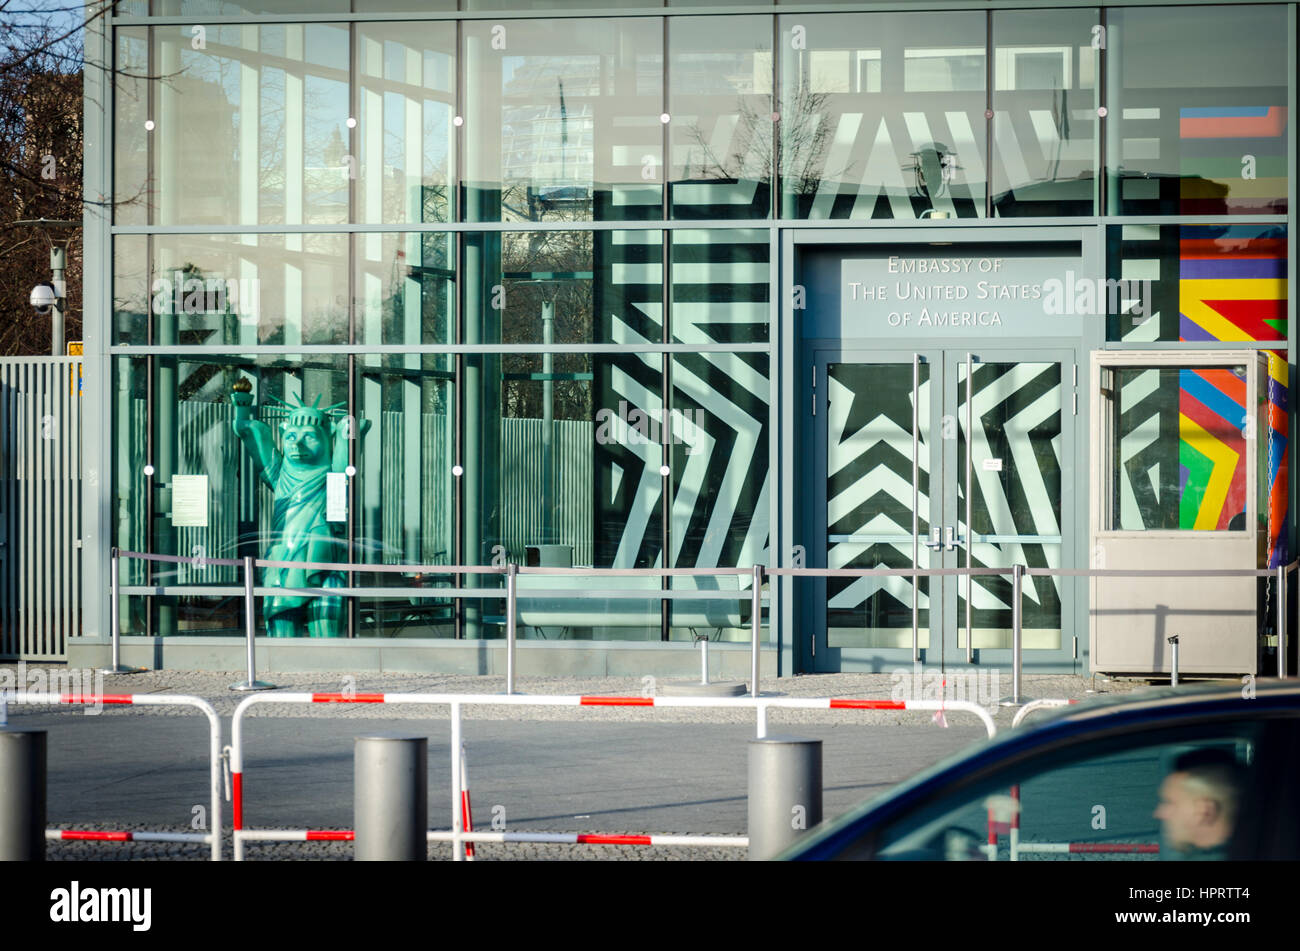 Embassy of the United States of America, Berlin, Germany - Stock Image